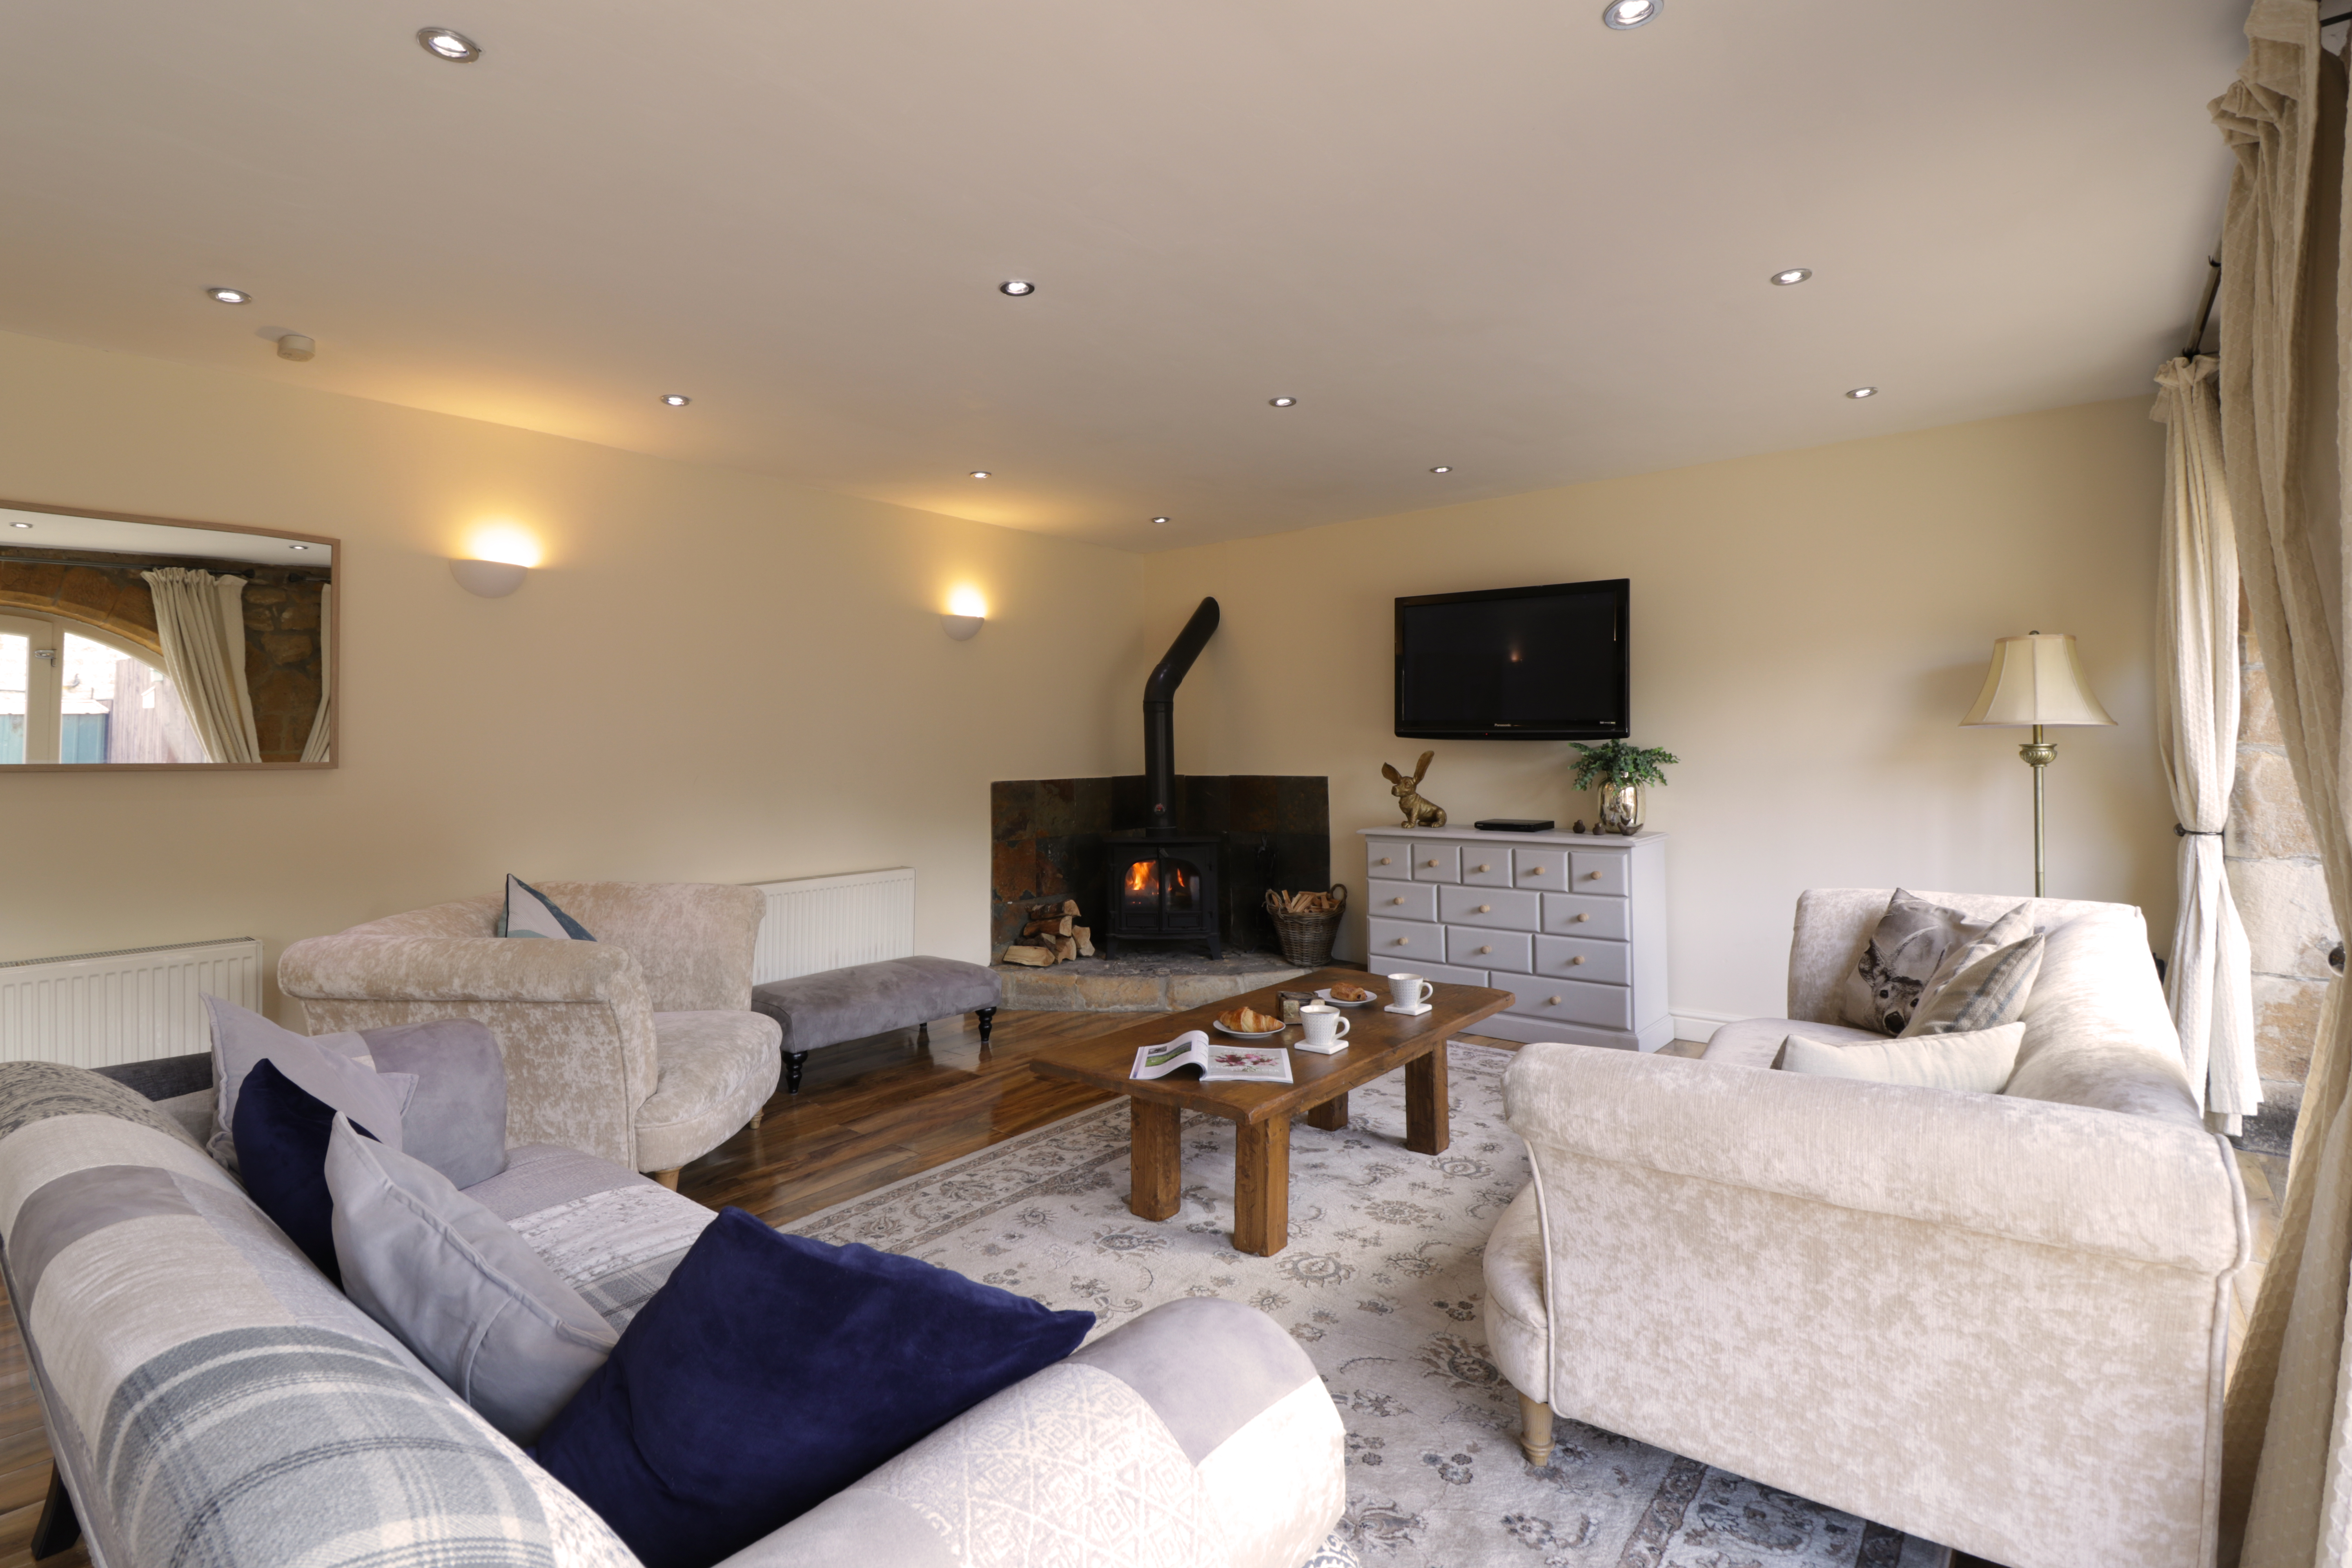 luxury holiday cottages in Otterburn next to Le Petit Chateau William de Percy wedding venue